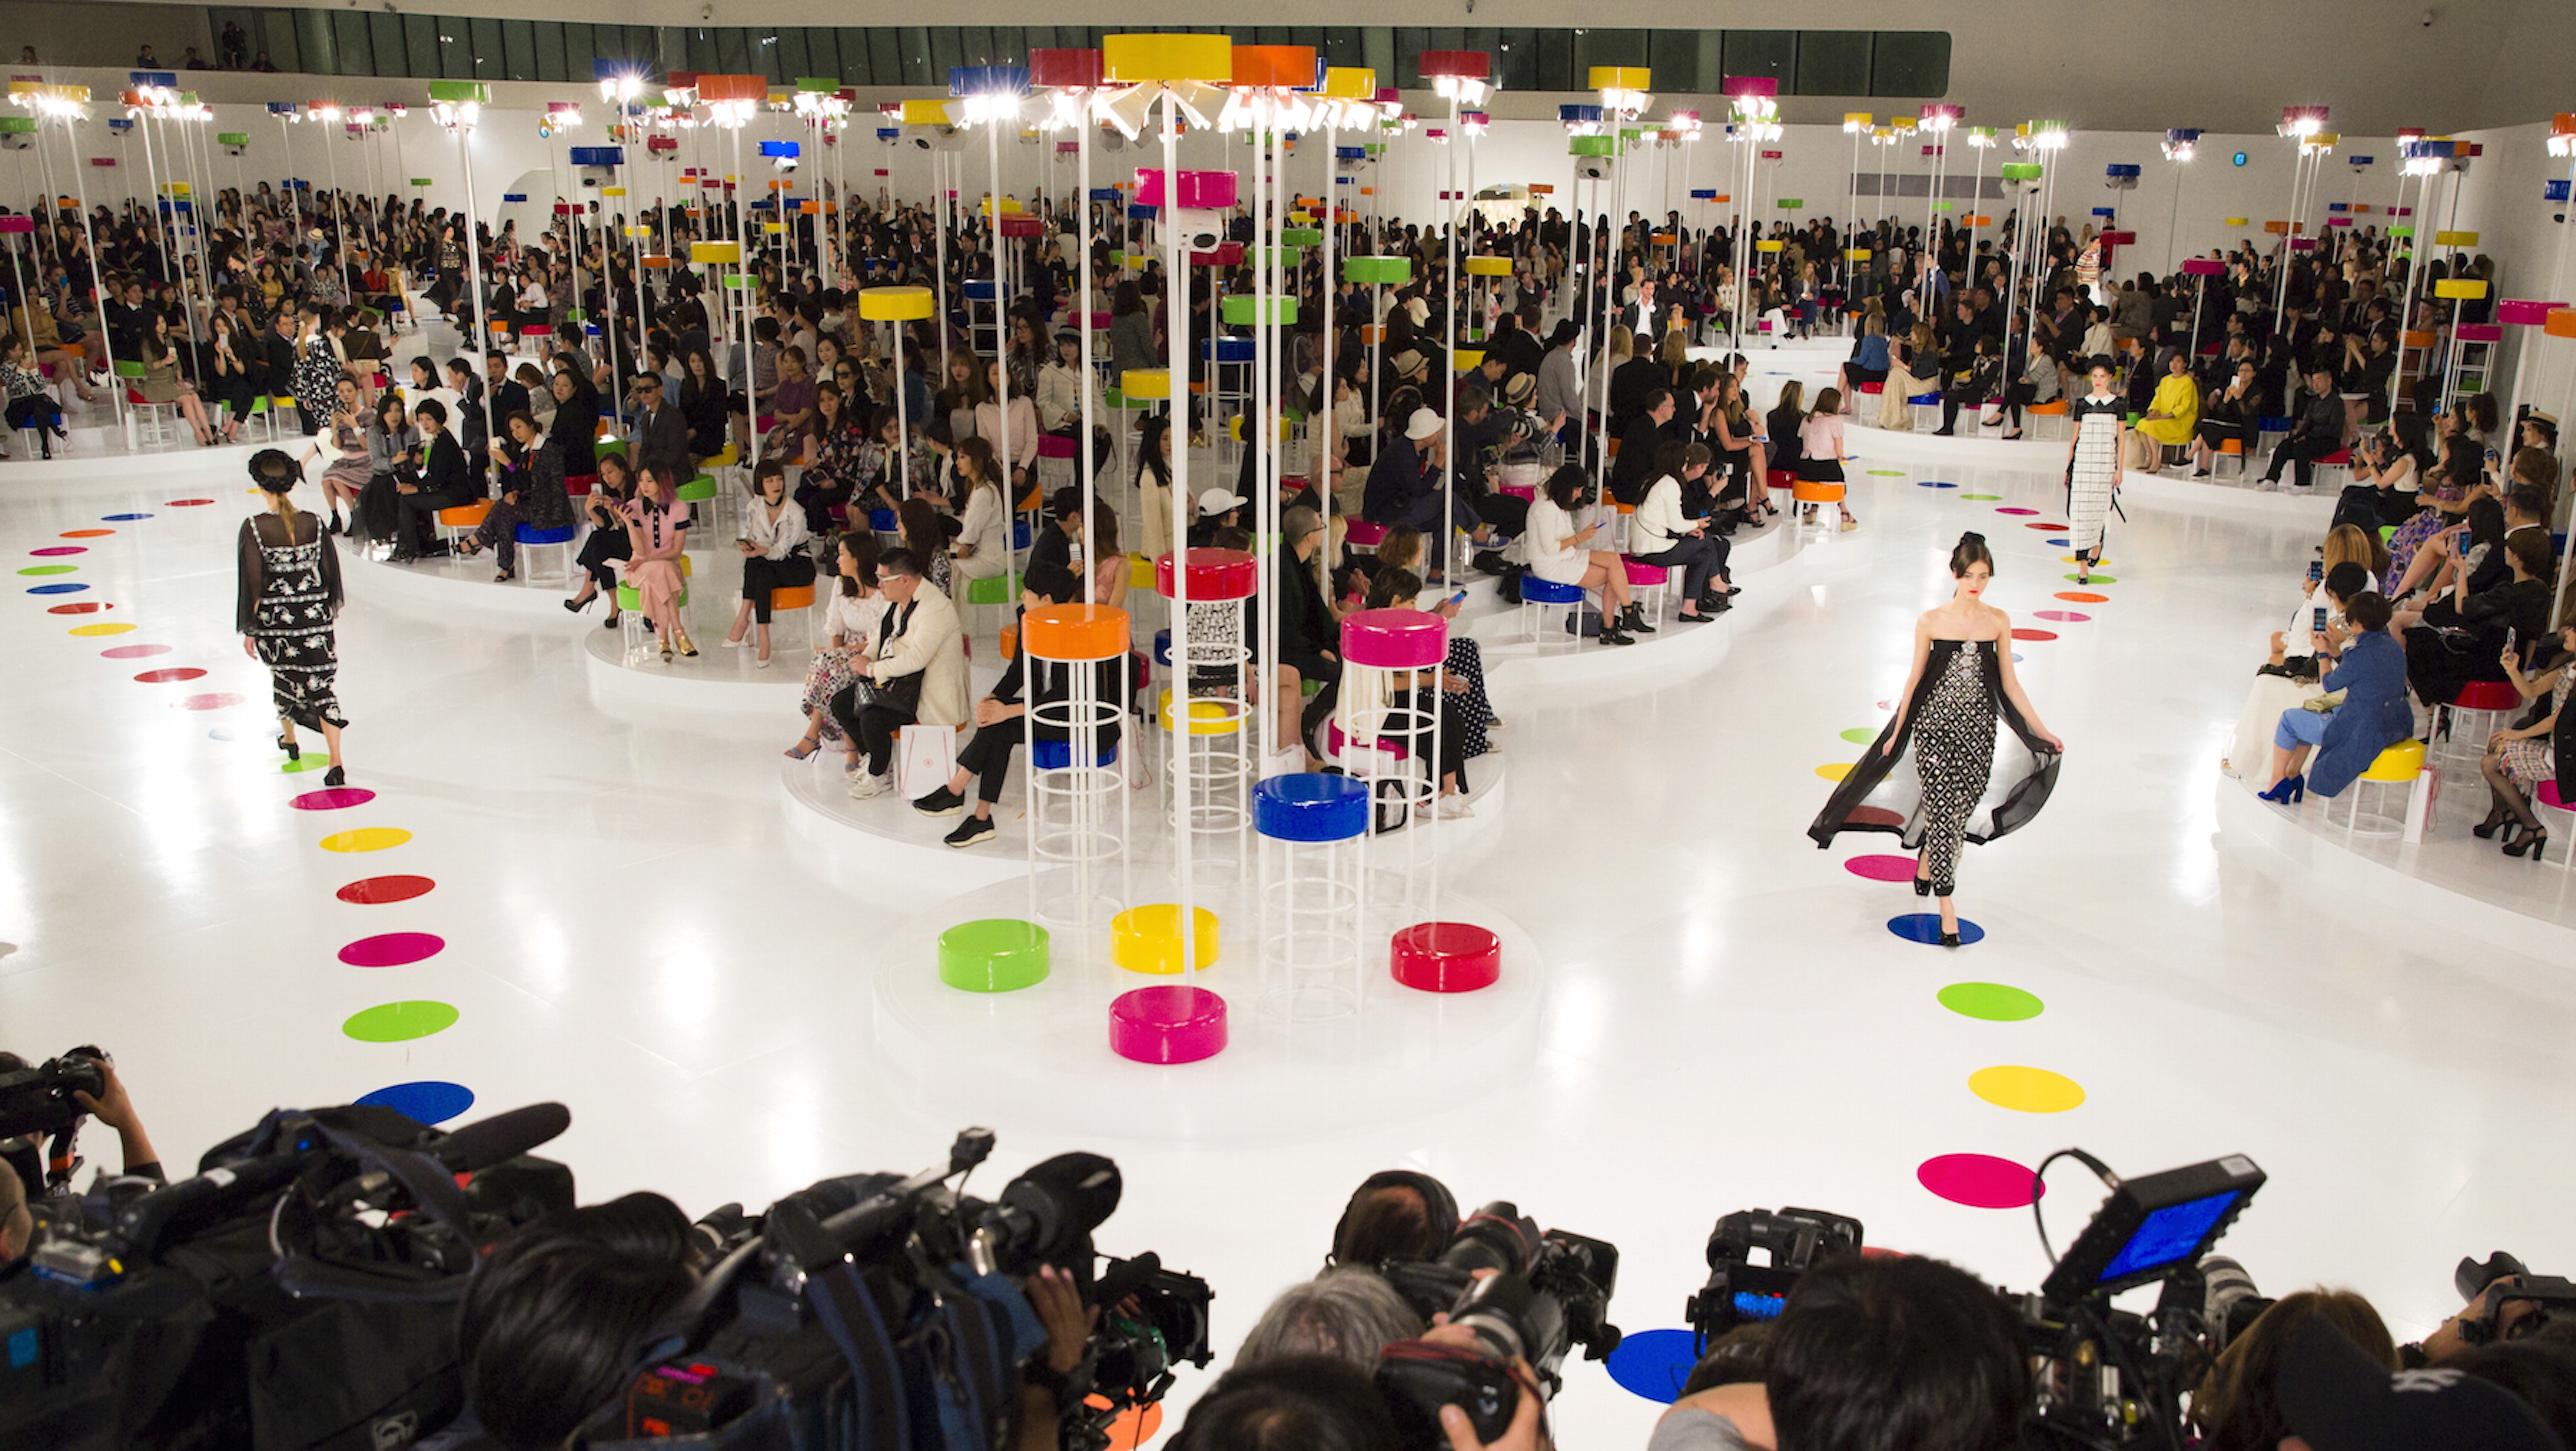 Chanel Cruise 2015/16 | Source: Reuters/Thomas Peter